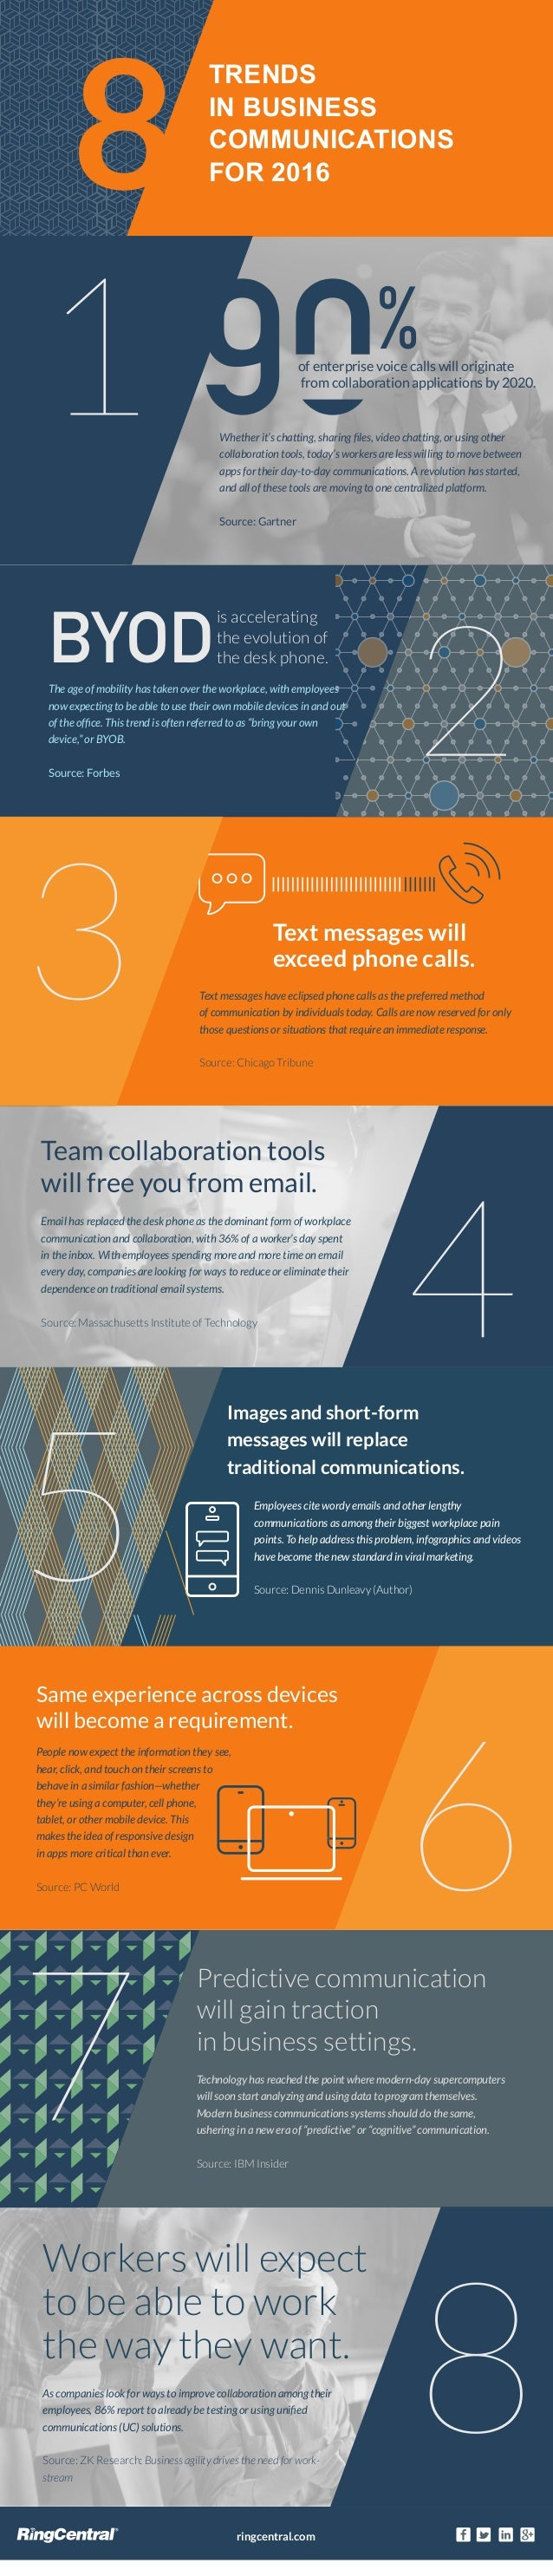 %of enterprise voice calls will originate from collaboration applications by 2020. Whether it's chatting, sharing files, vi...